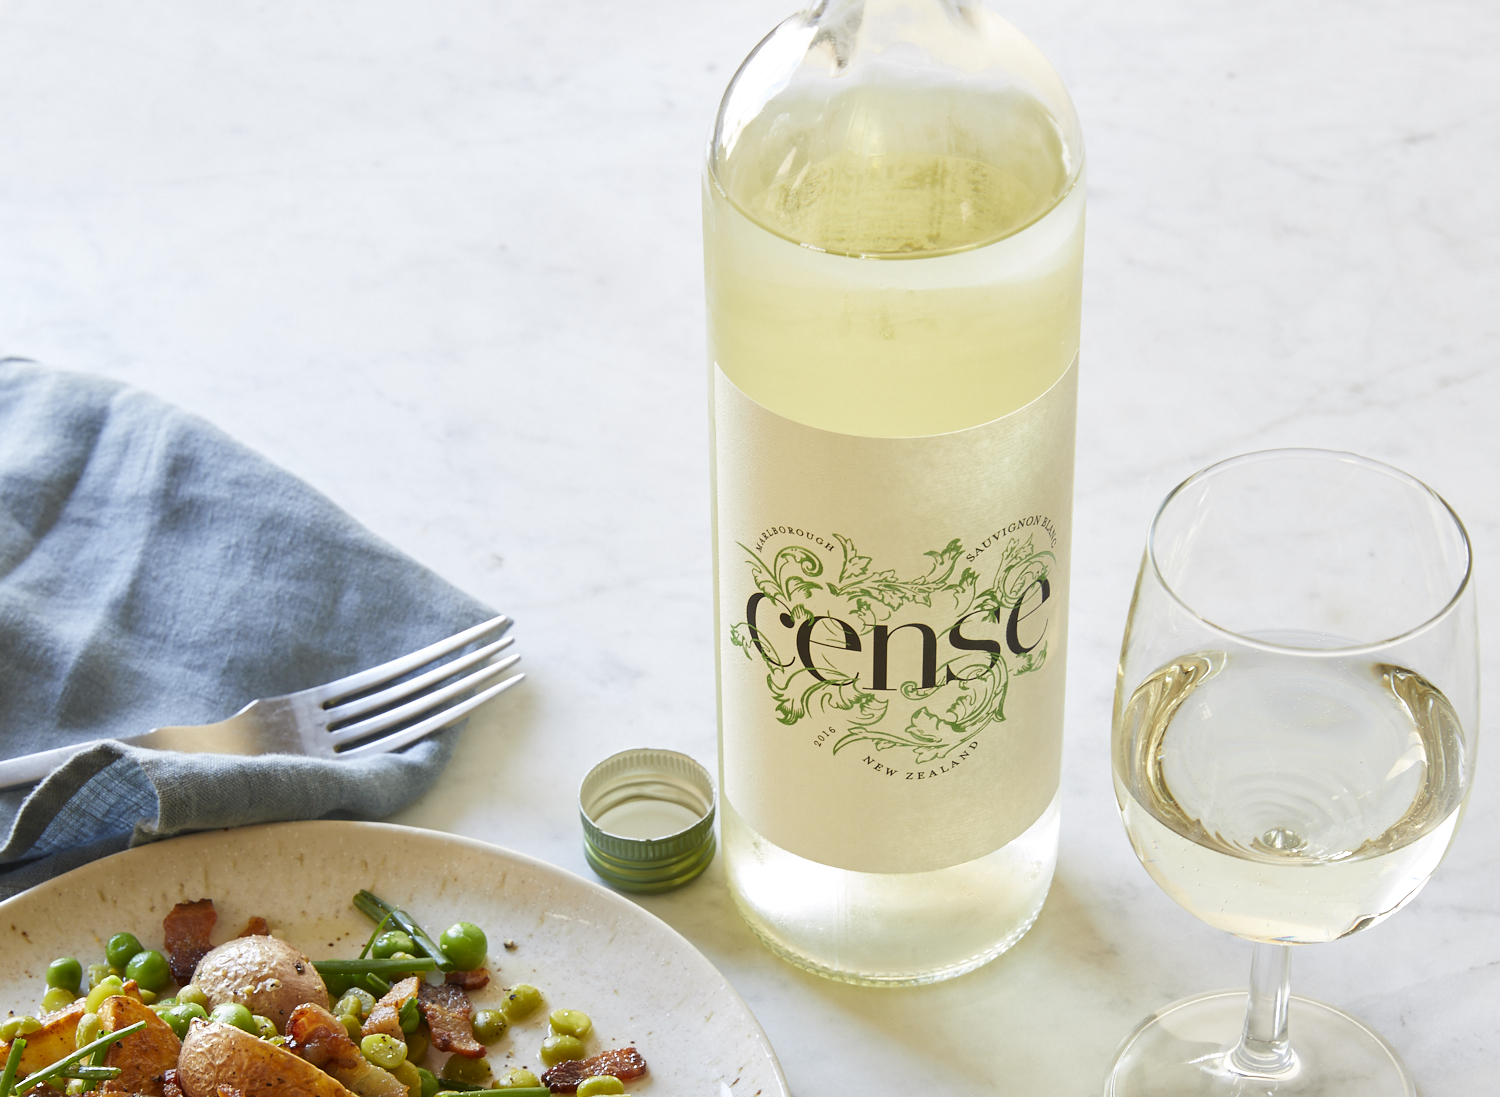 Cense Weight Watchers Wine